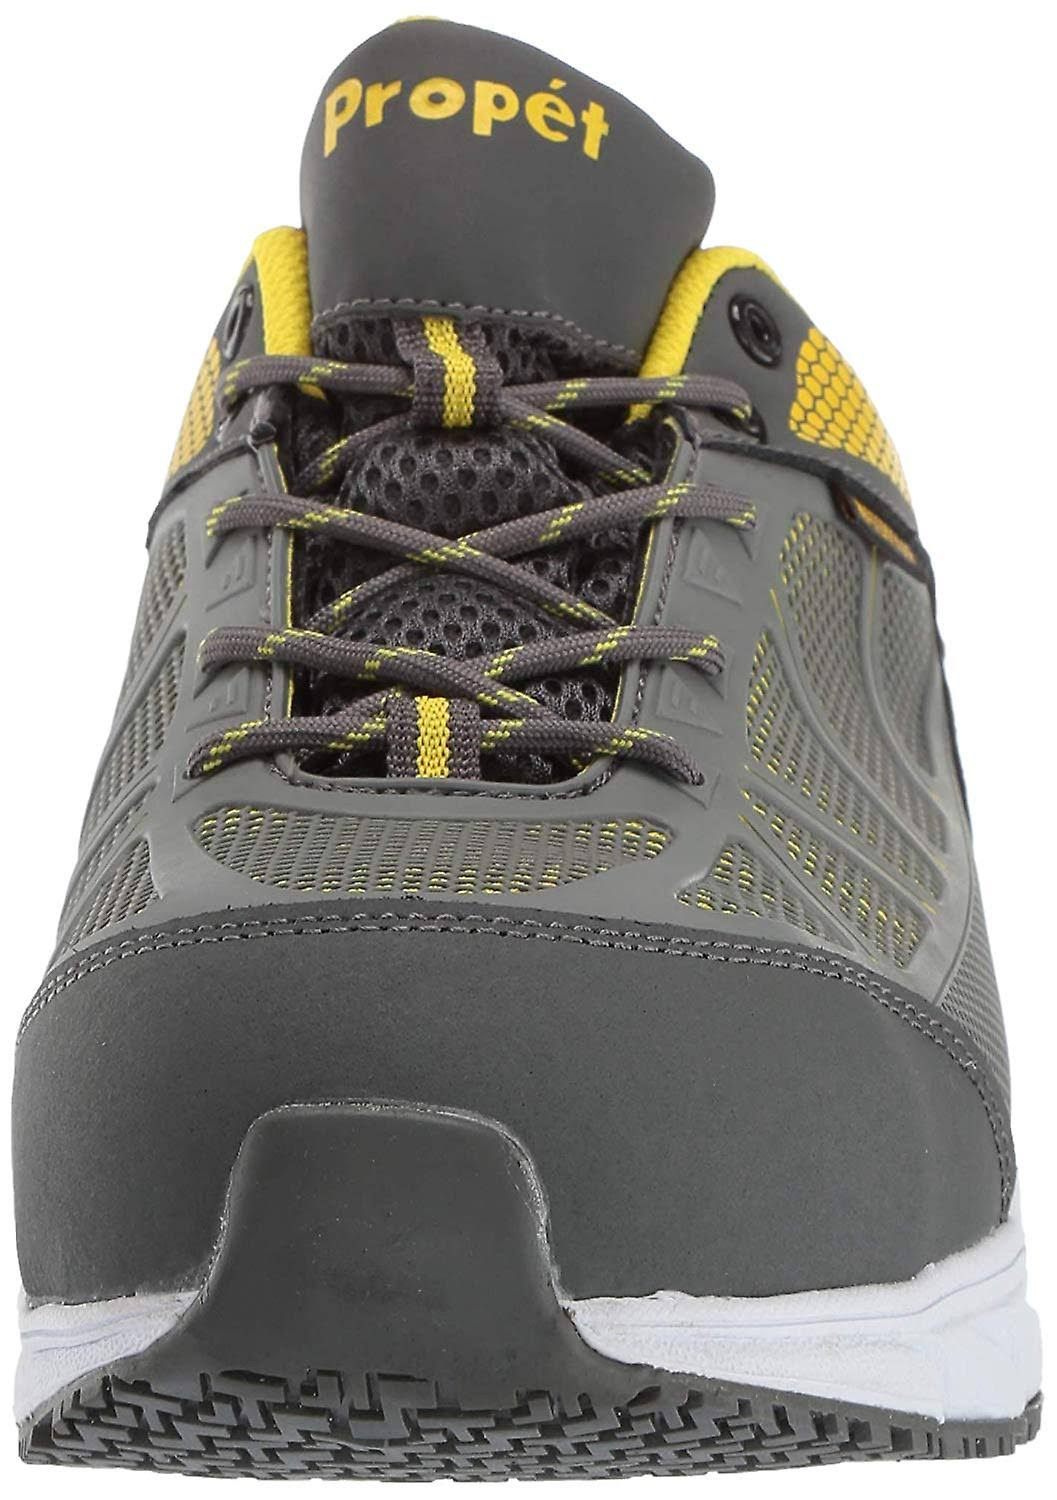 Propét Mens Seeley Leather Composite Toe Lace Up Safety Shoes Grey 7.5 US / 7 UK